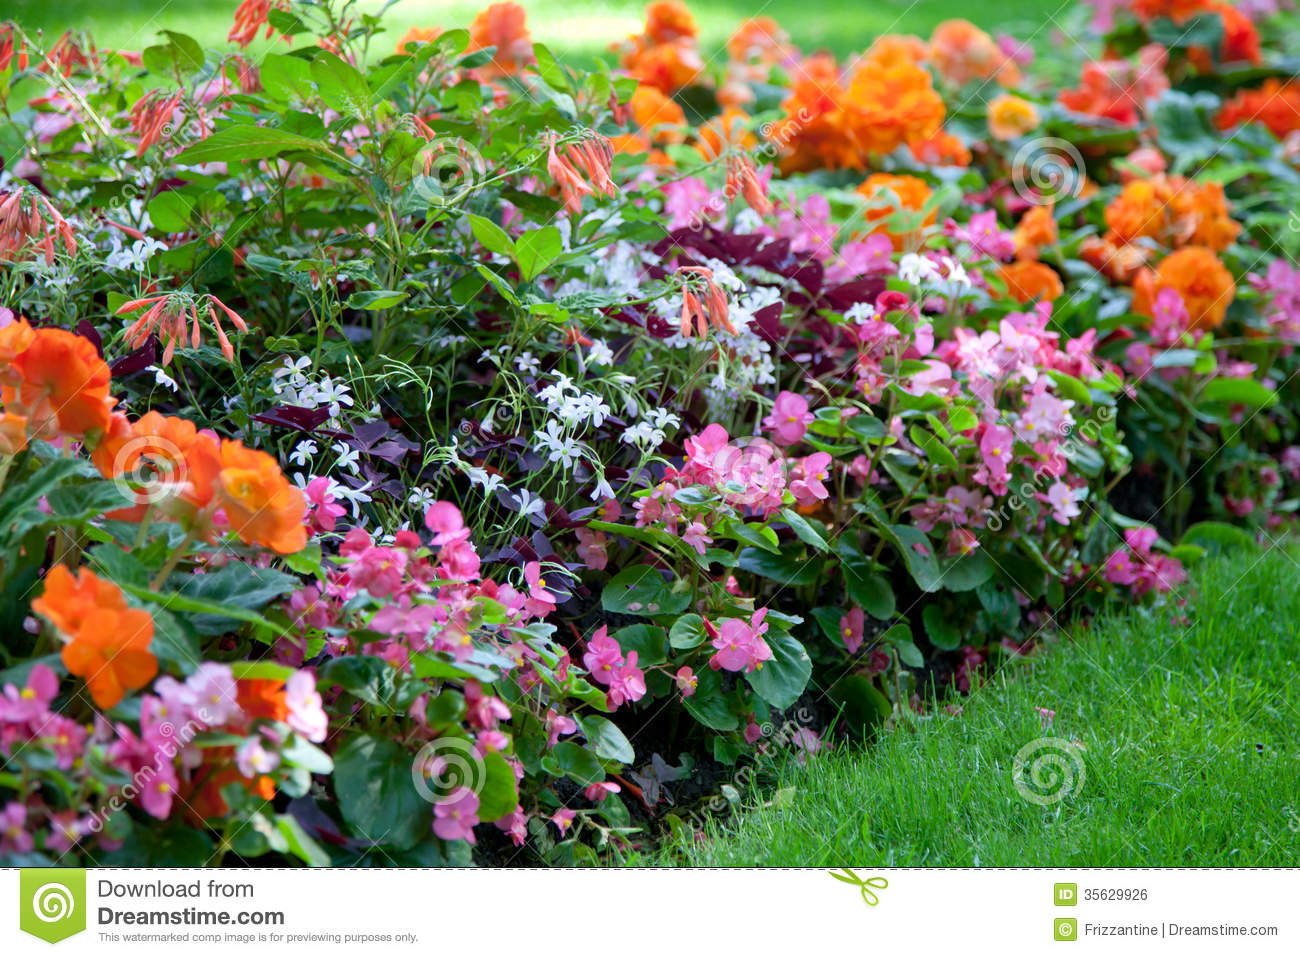 Colorful Flower Design In Garden Royalty Free Stock Image